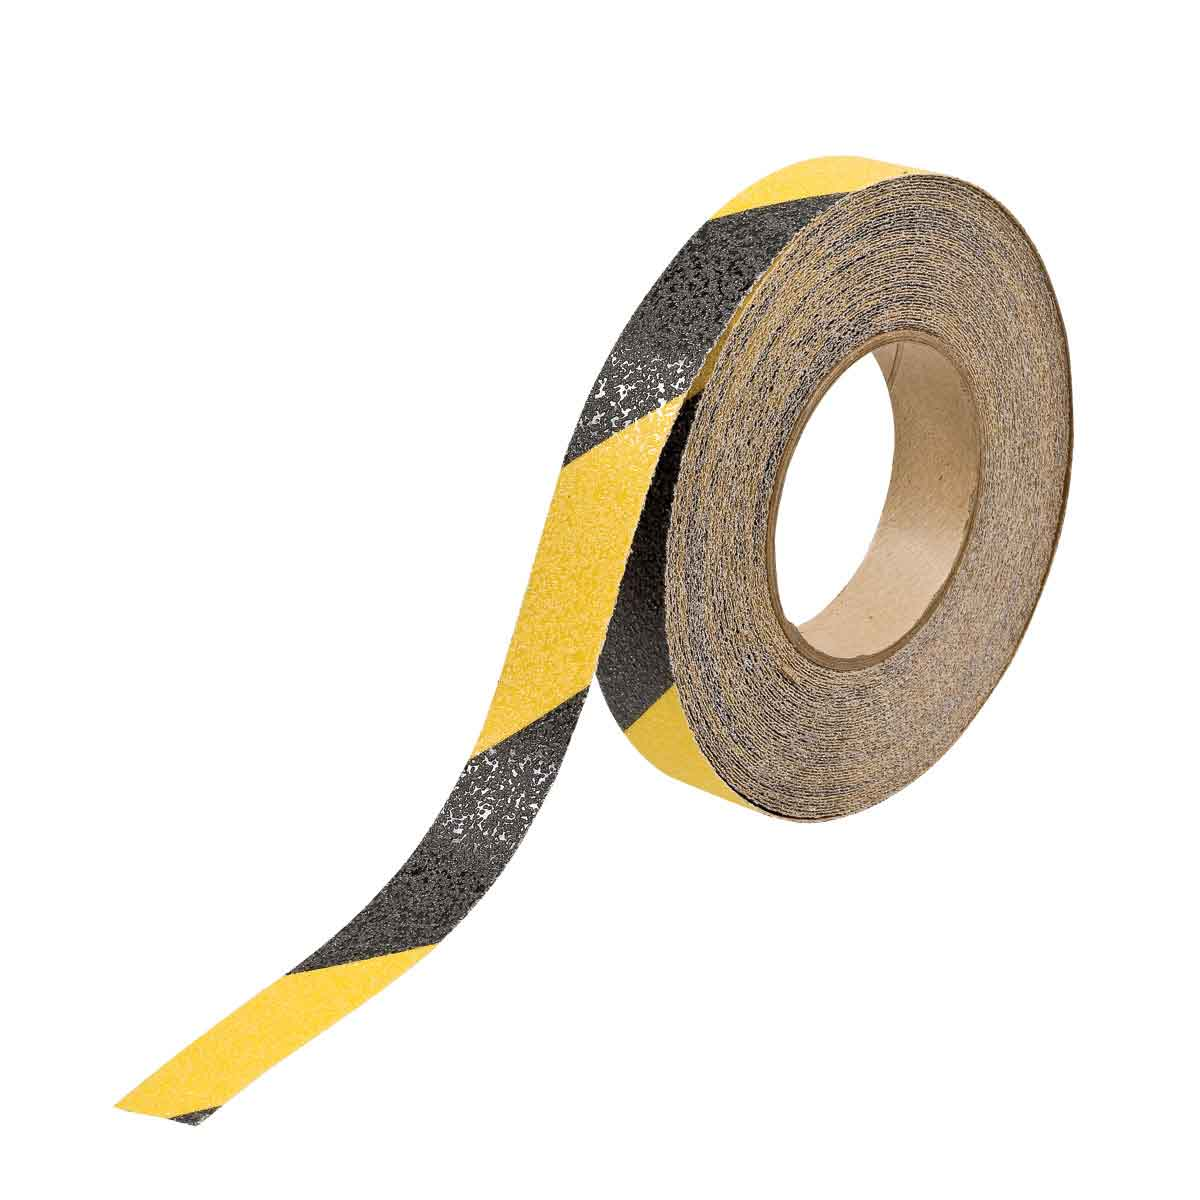 Brady® 78146 Blank Laminated Non-Reflective Anti-Skid Tape, 60 ft L x 1 in W x 0.026 in THK, B-916 Polyester, Stripes Surface Pattern, Gritted Surface